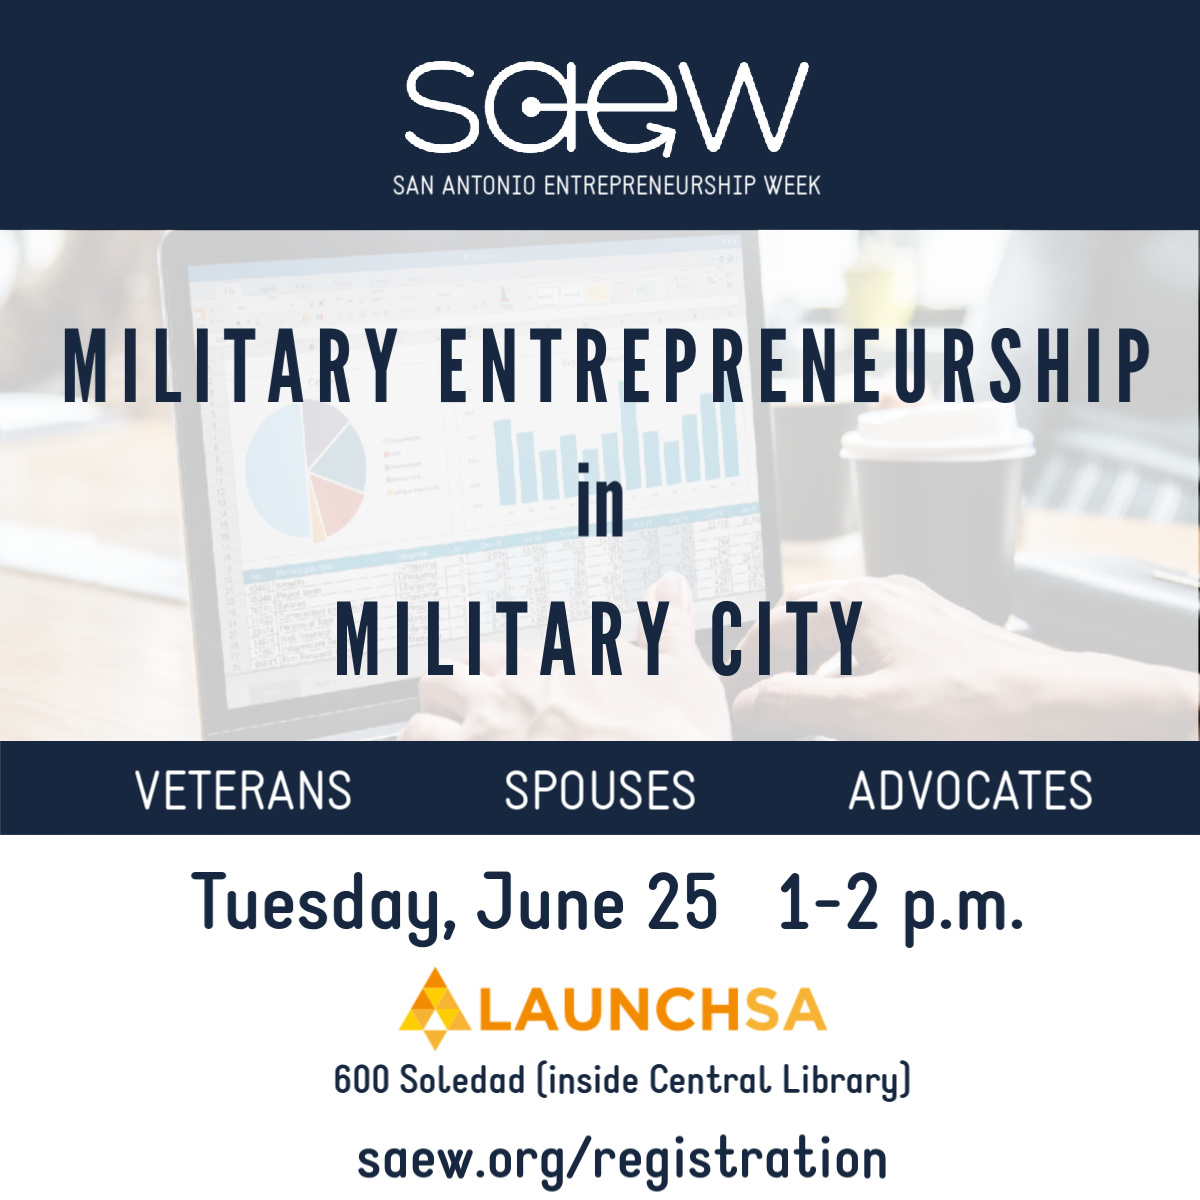 San Antonio Startup Events for the Week of June 24, 2019